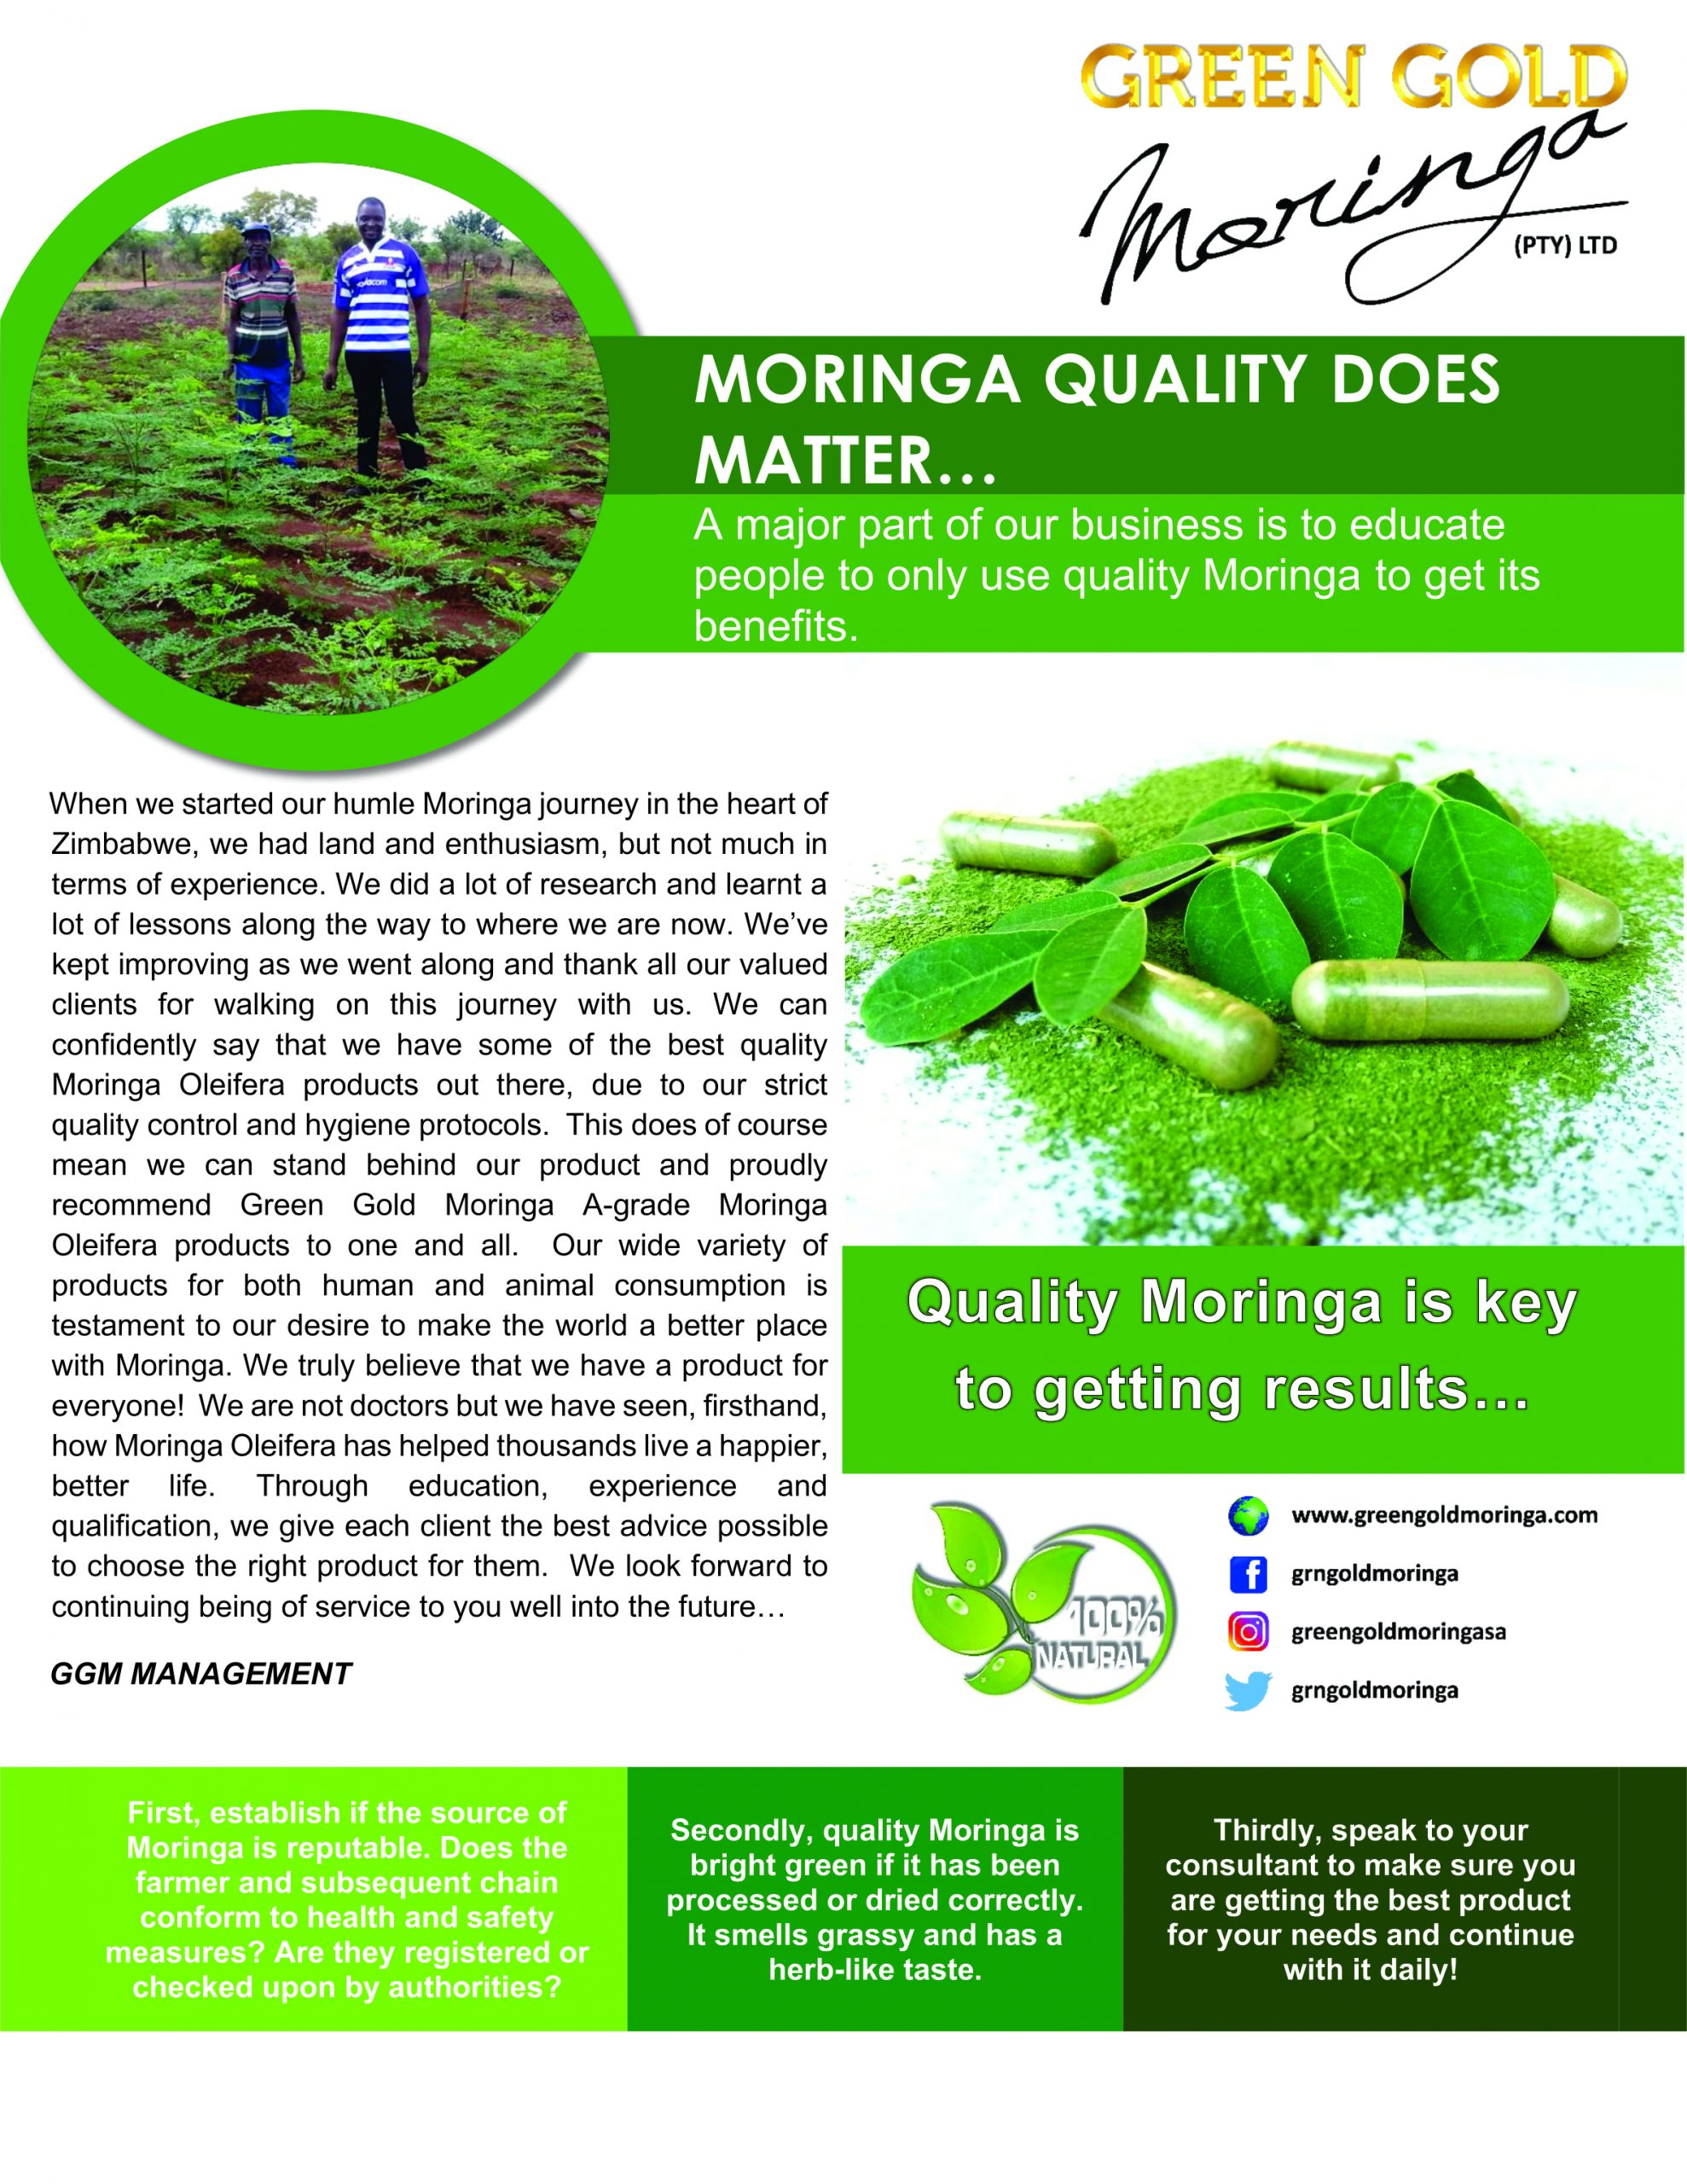 MORINGA QUALITY DOES MATTER…IF YOU WANT RESULTS THAT IS!